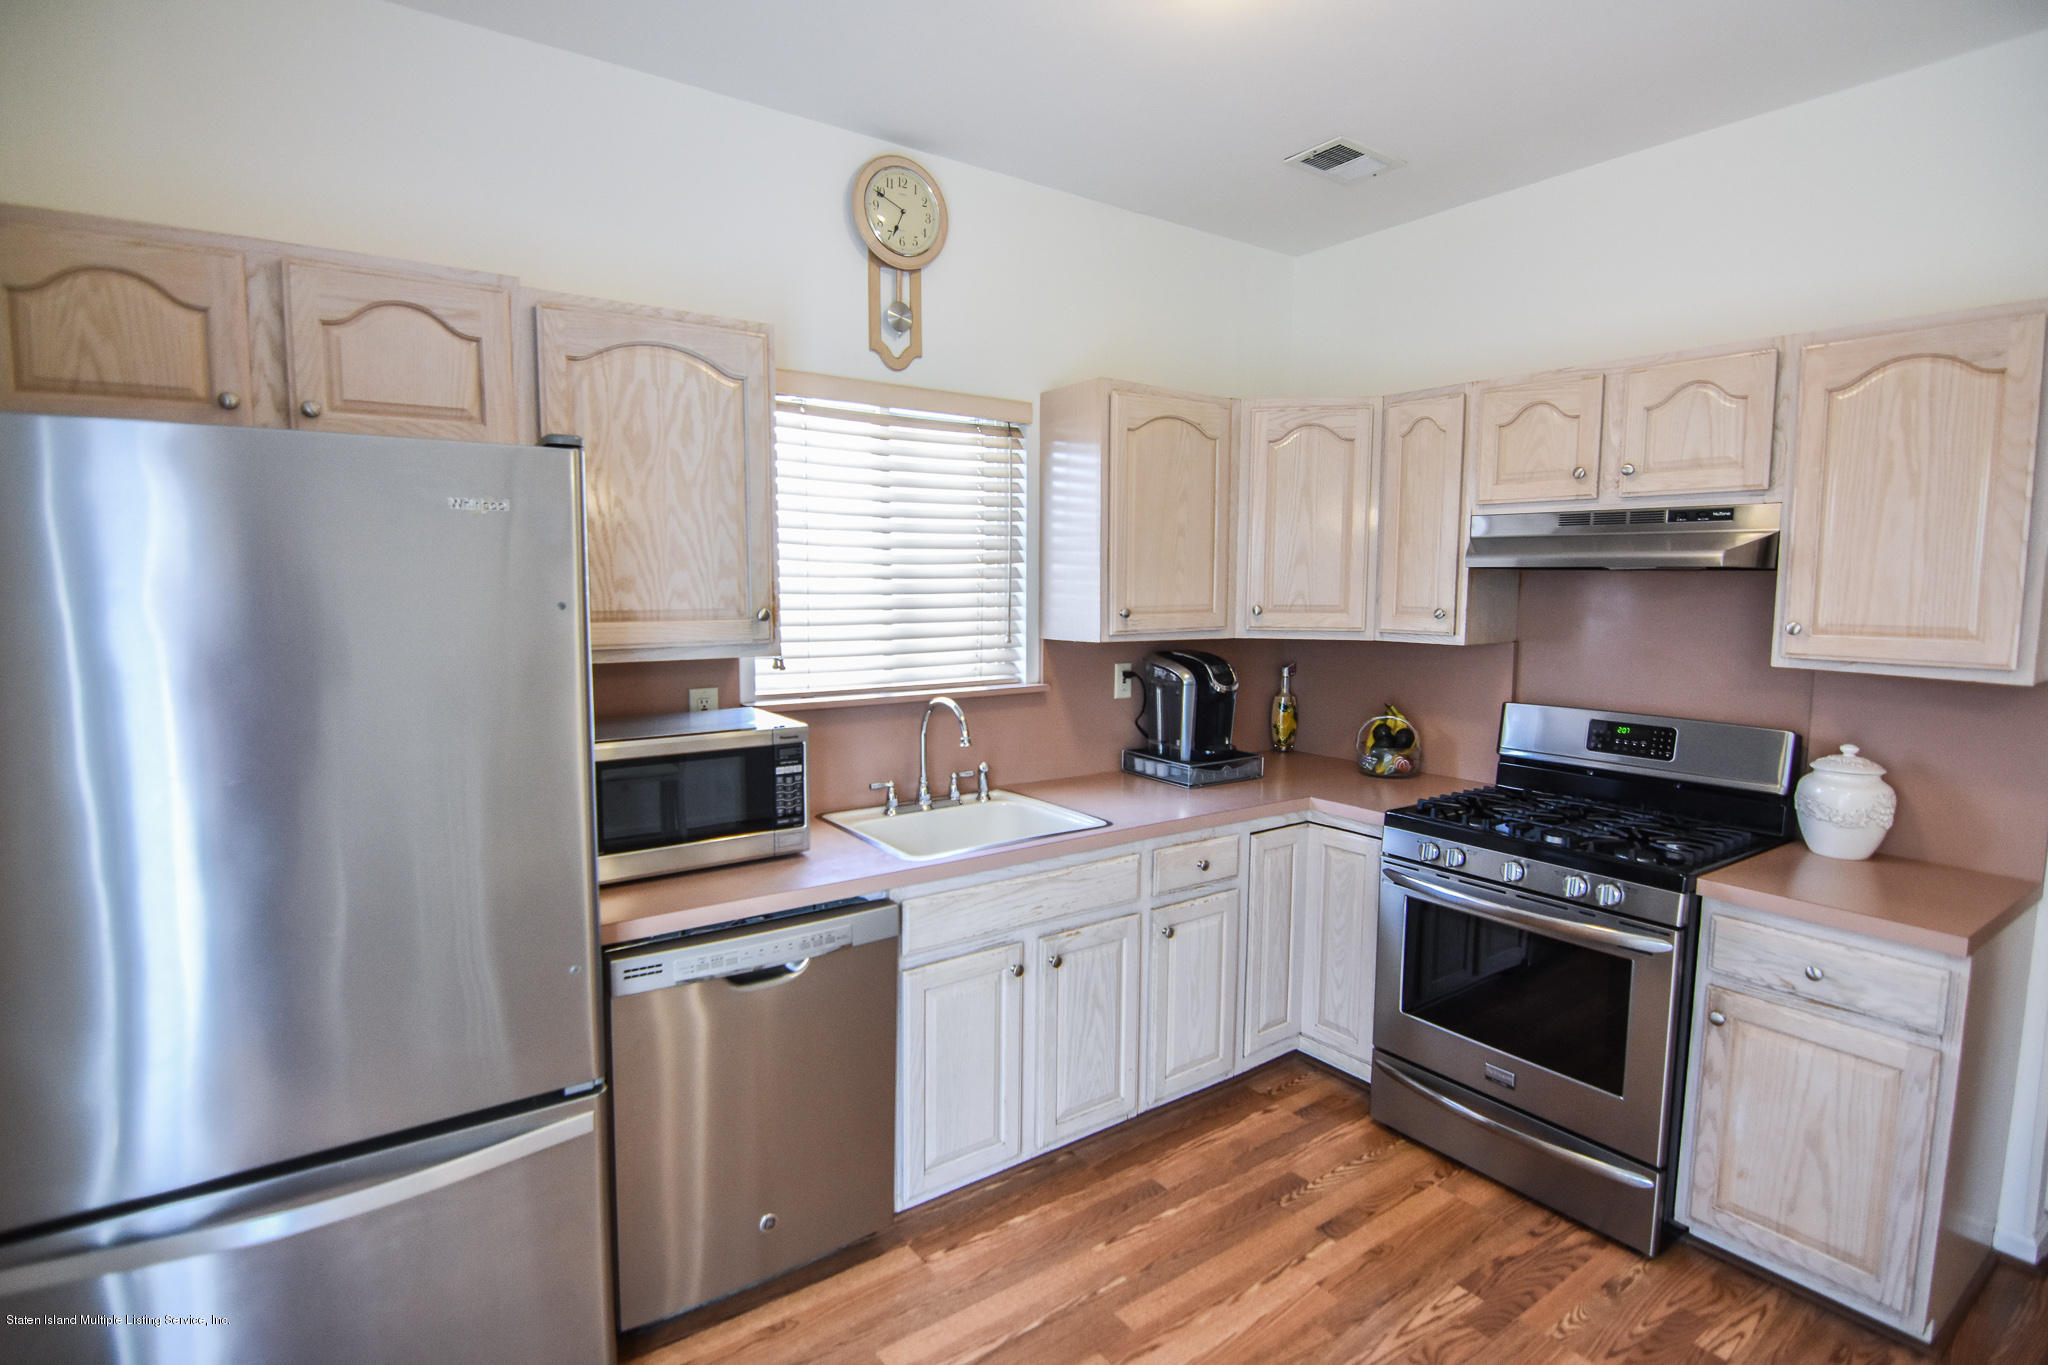 Single Family - Semi-Attached 762 Bloomingdale Road  Staten Island, NY 10309, MLS-1125791-13